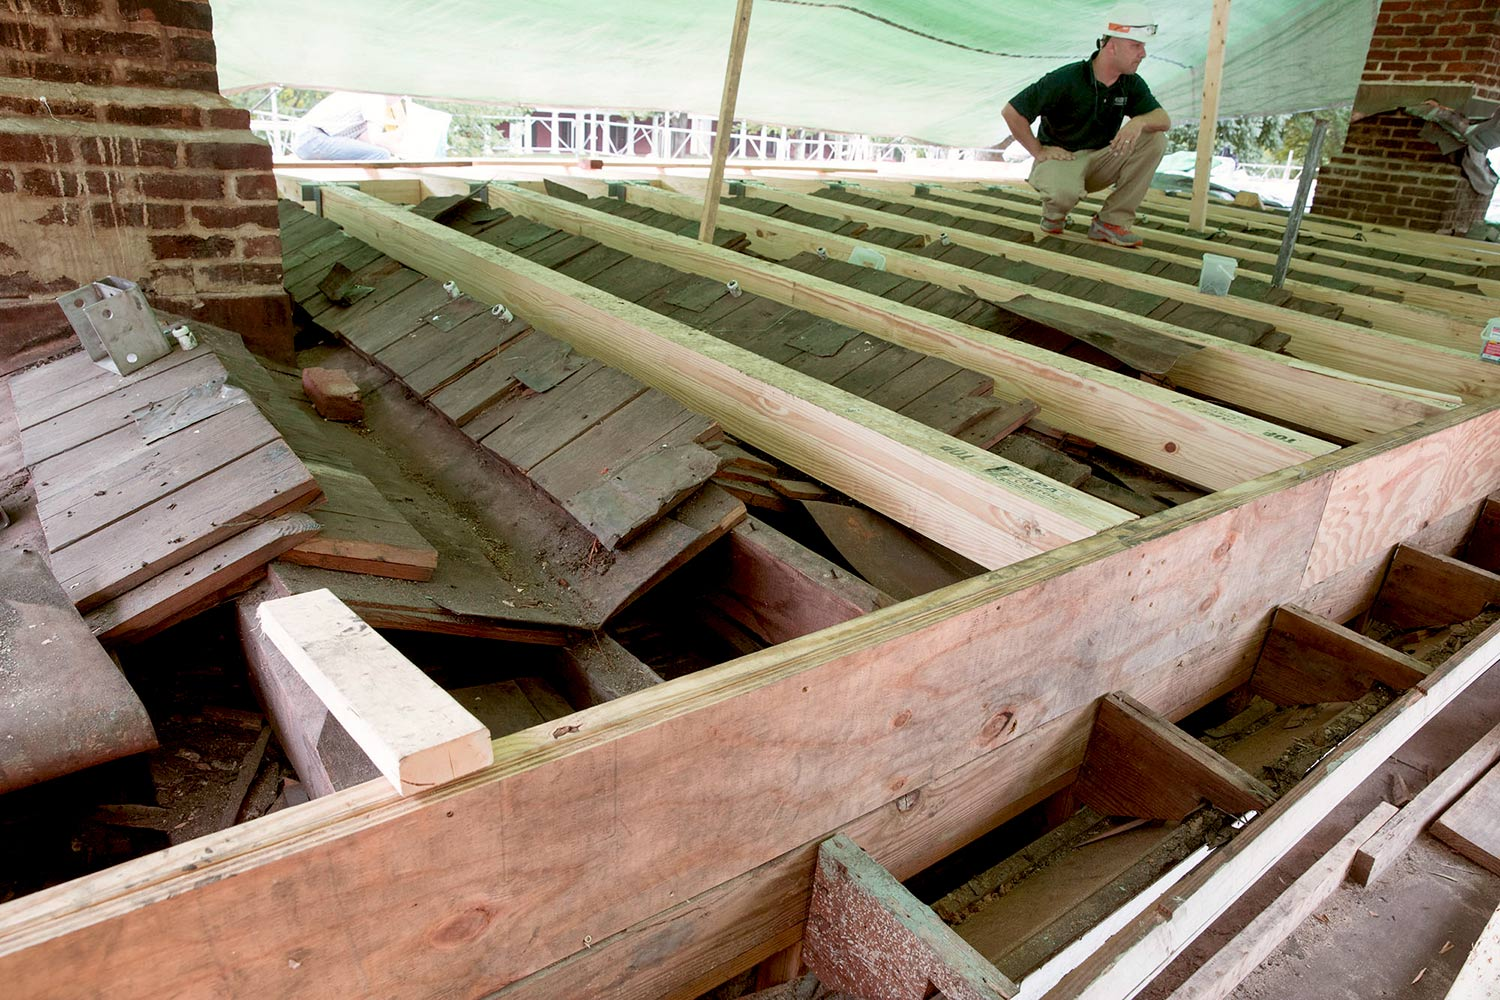 The new roof sections will cover the old roof and then a deck, similar to the one designed by Thomas Jefferson, will be installed over the roof.